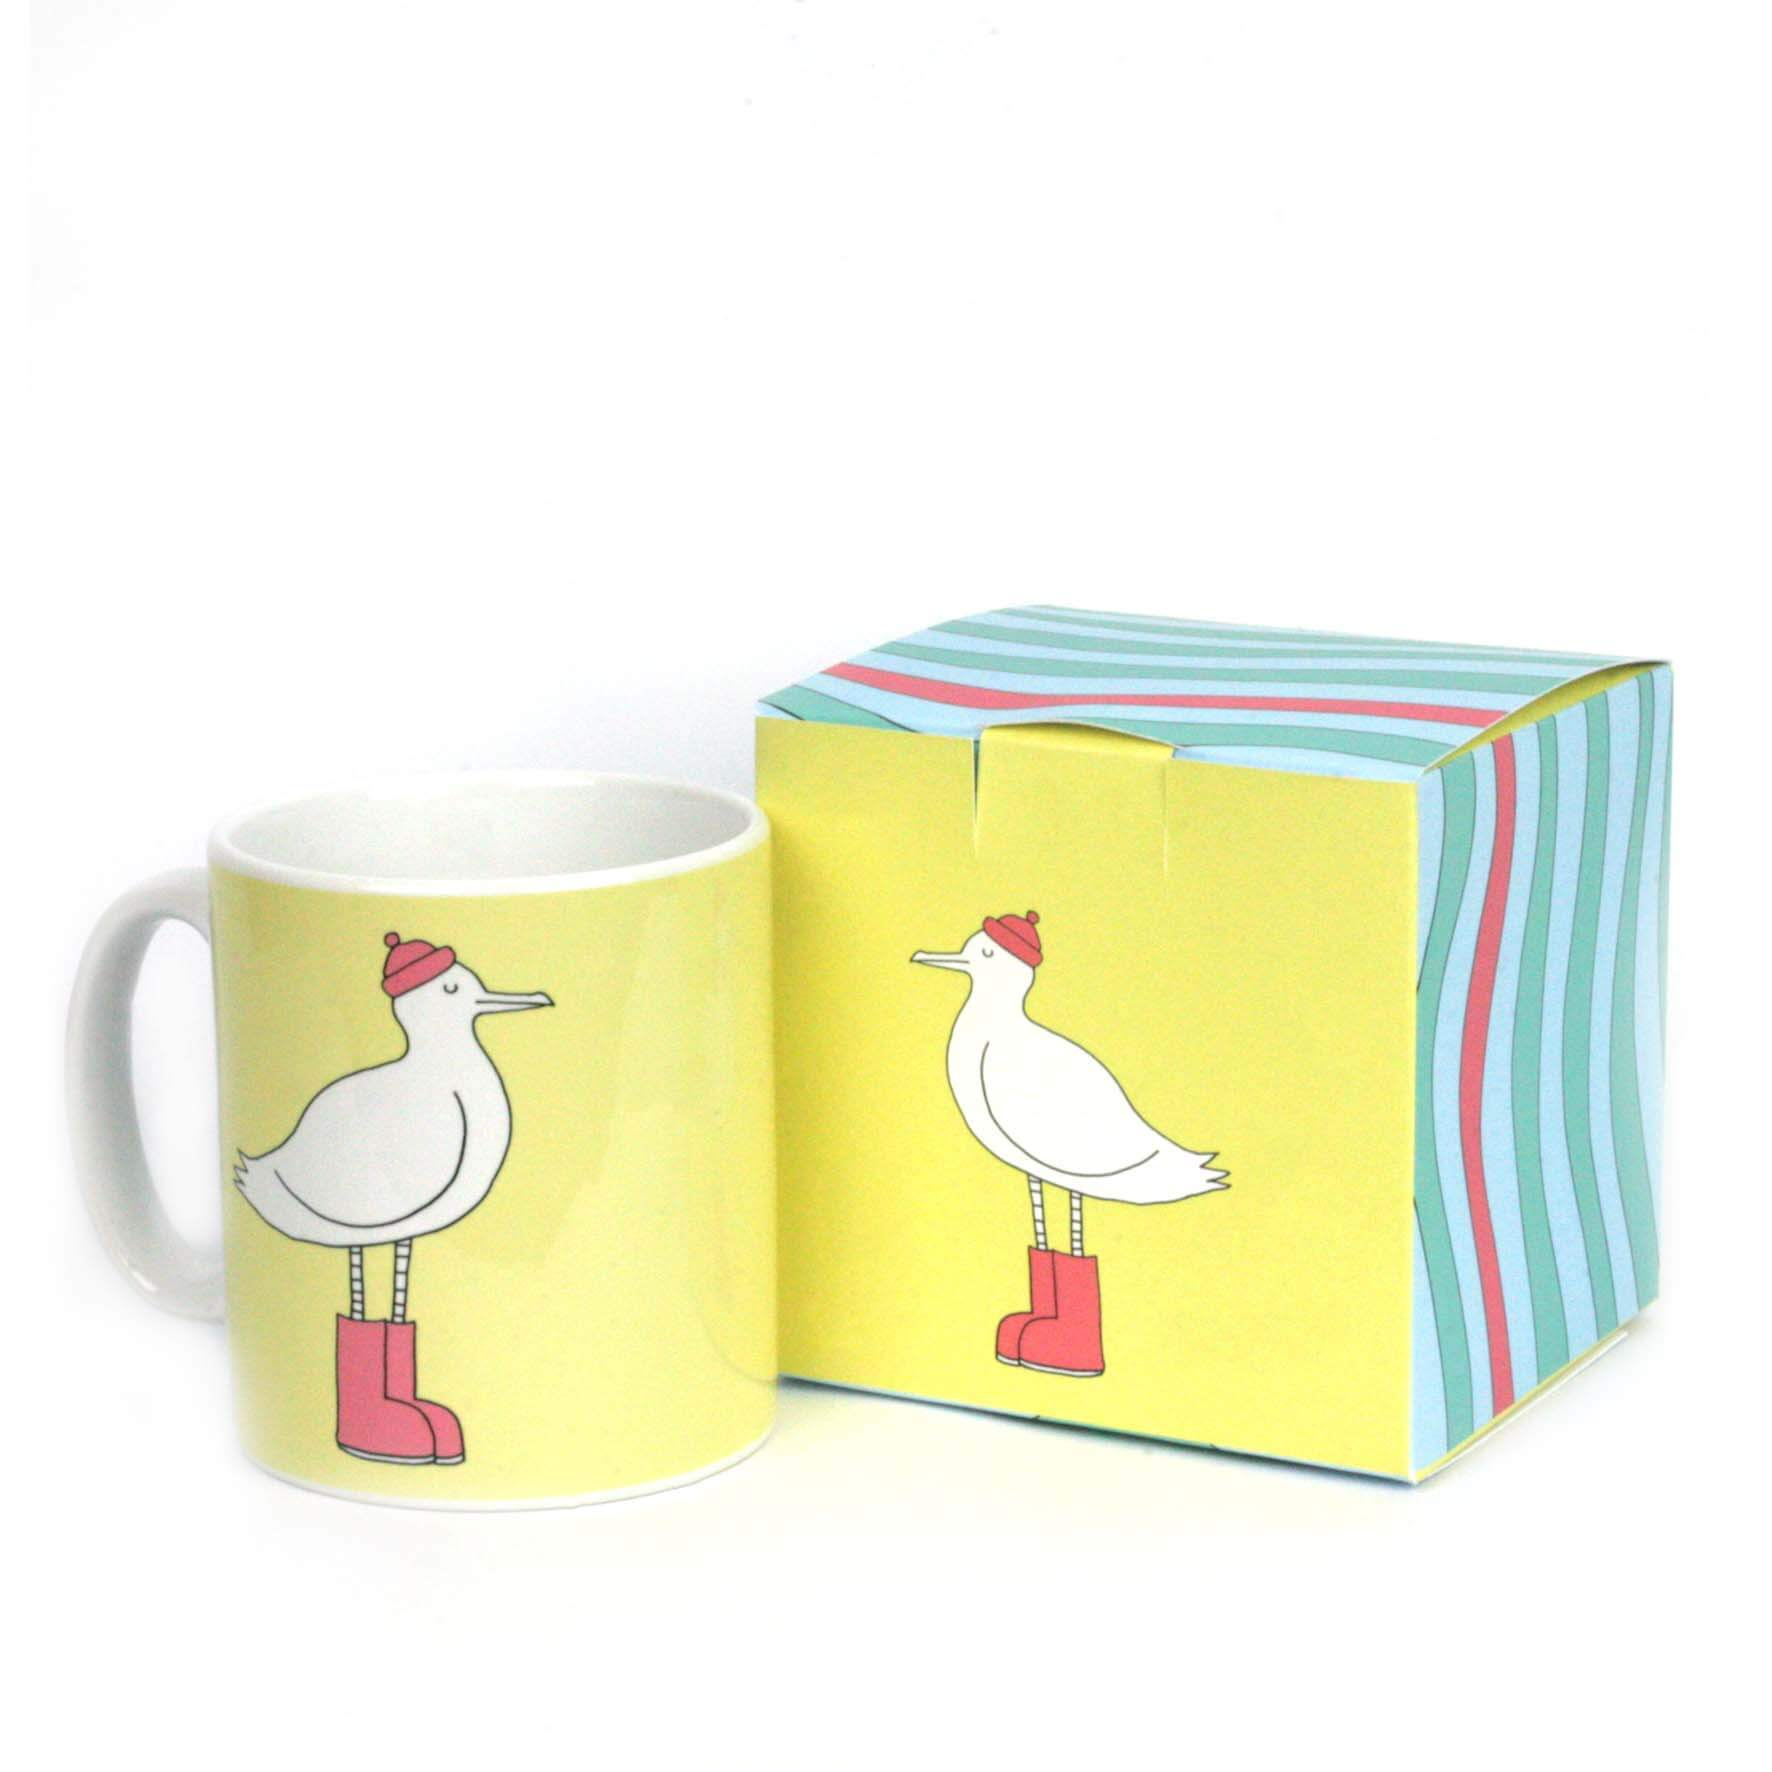 Yellow mug with gift box featuring an illustration of a seagull